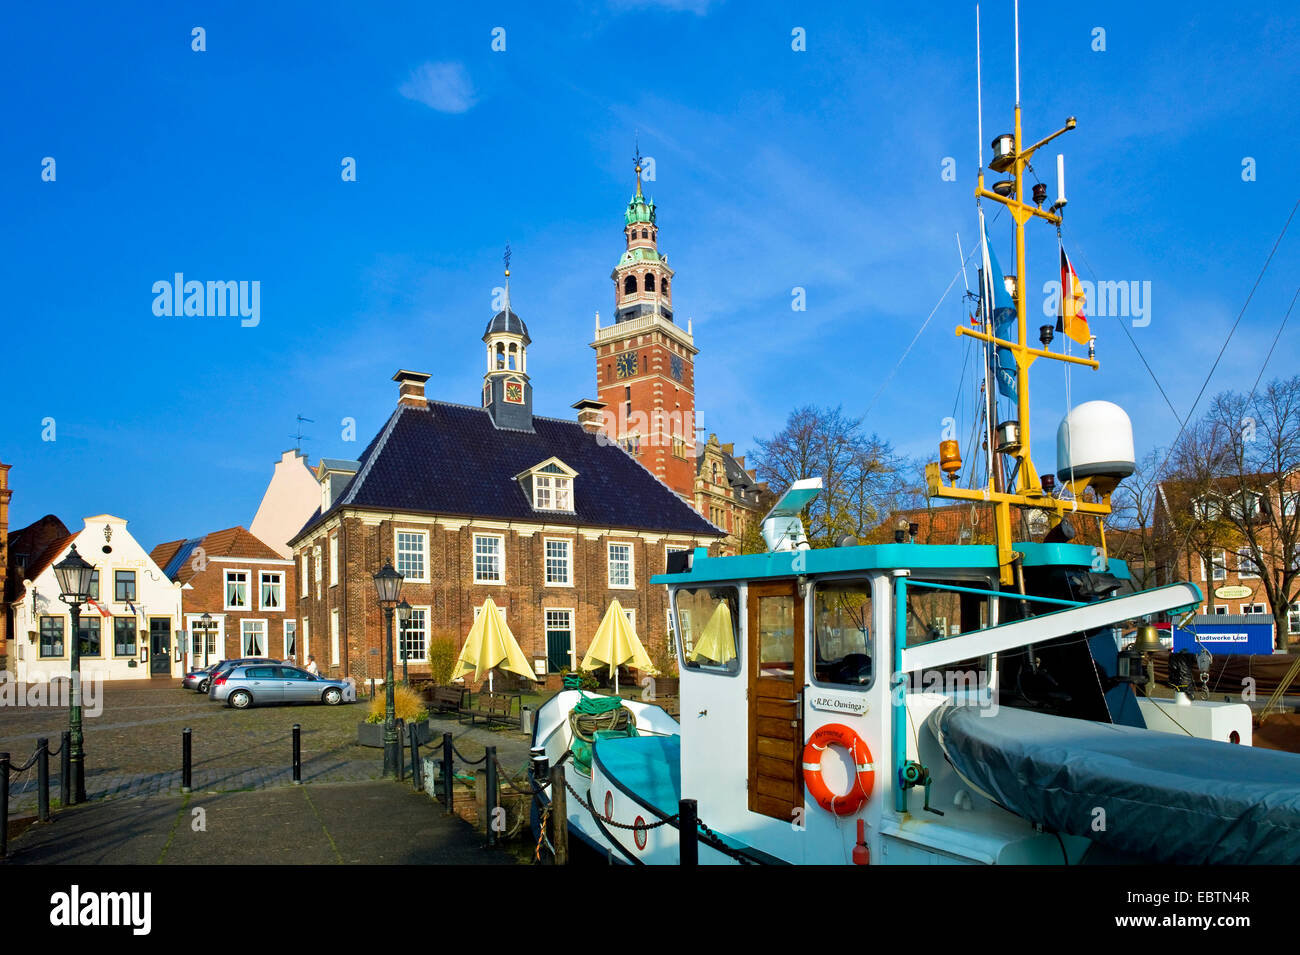 old town hall and scale at harbour, Germany, Leer - Stock Image